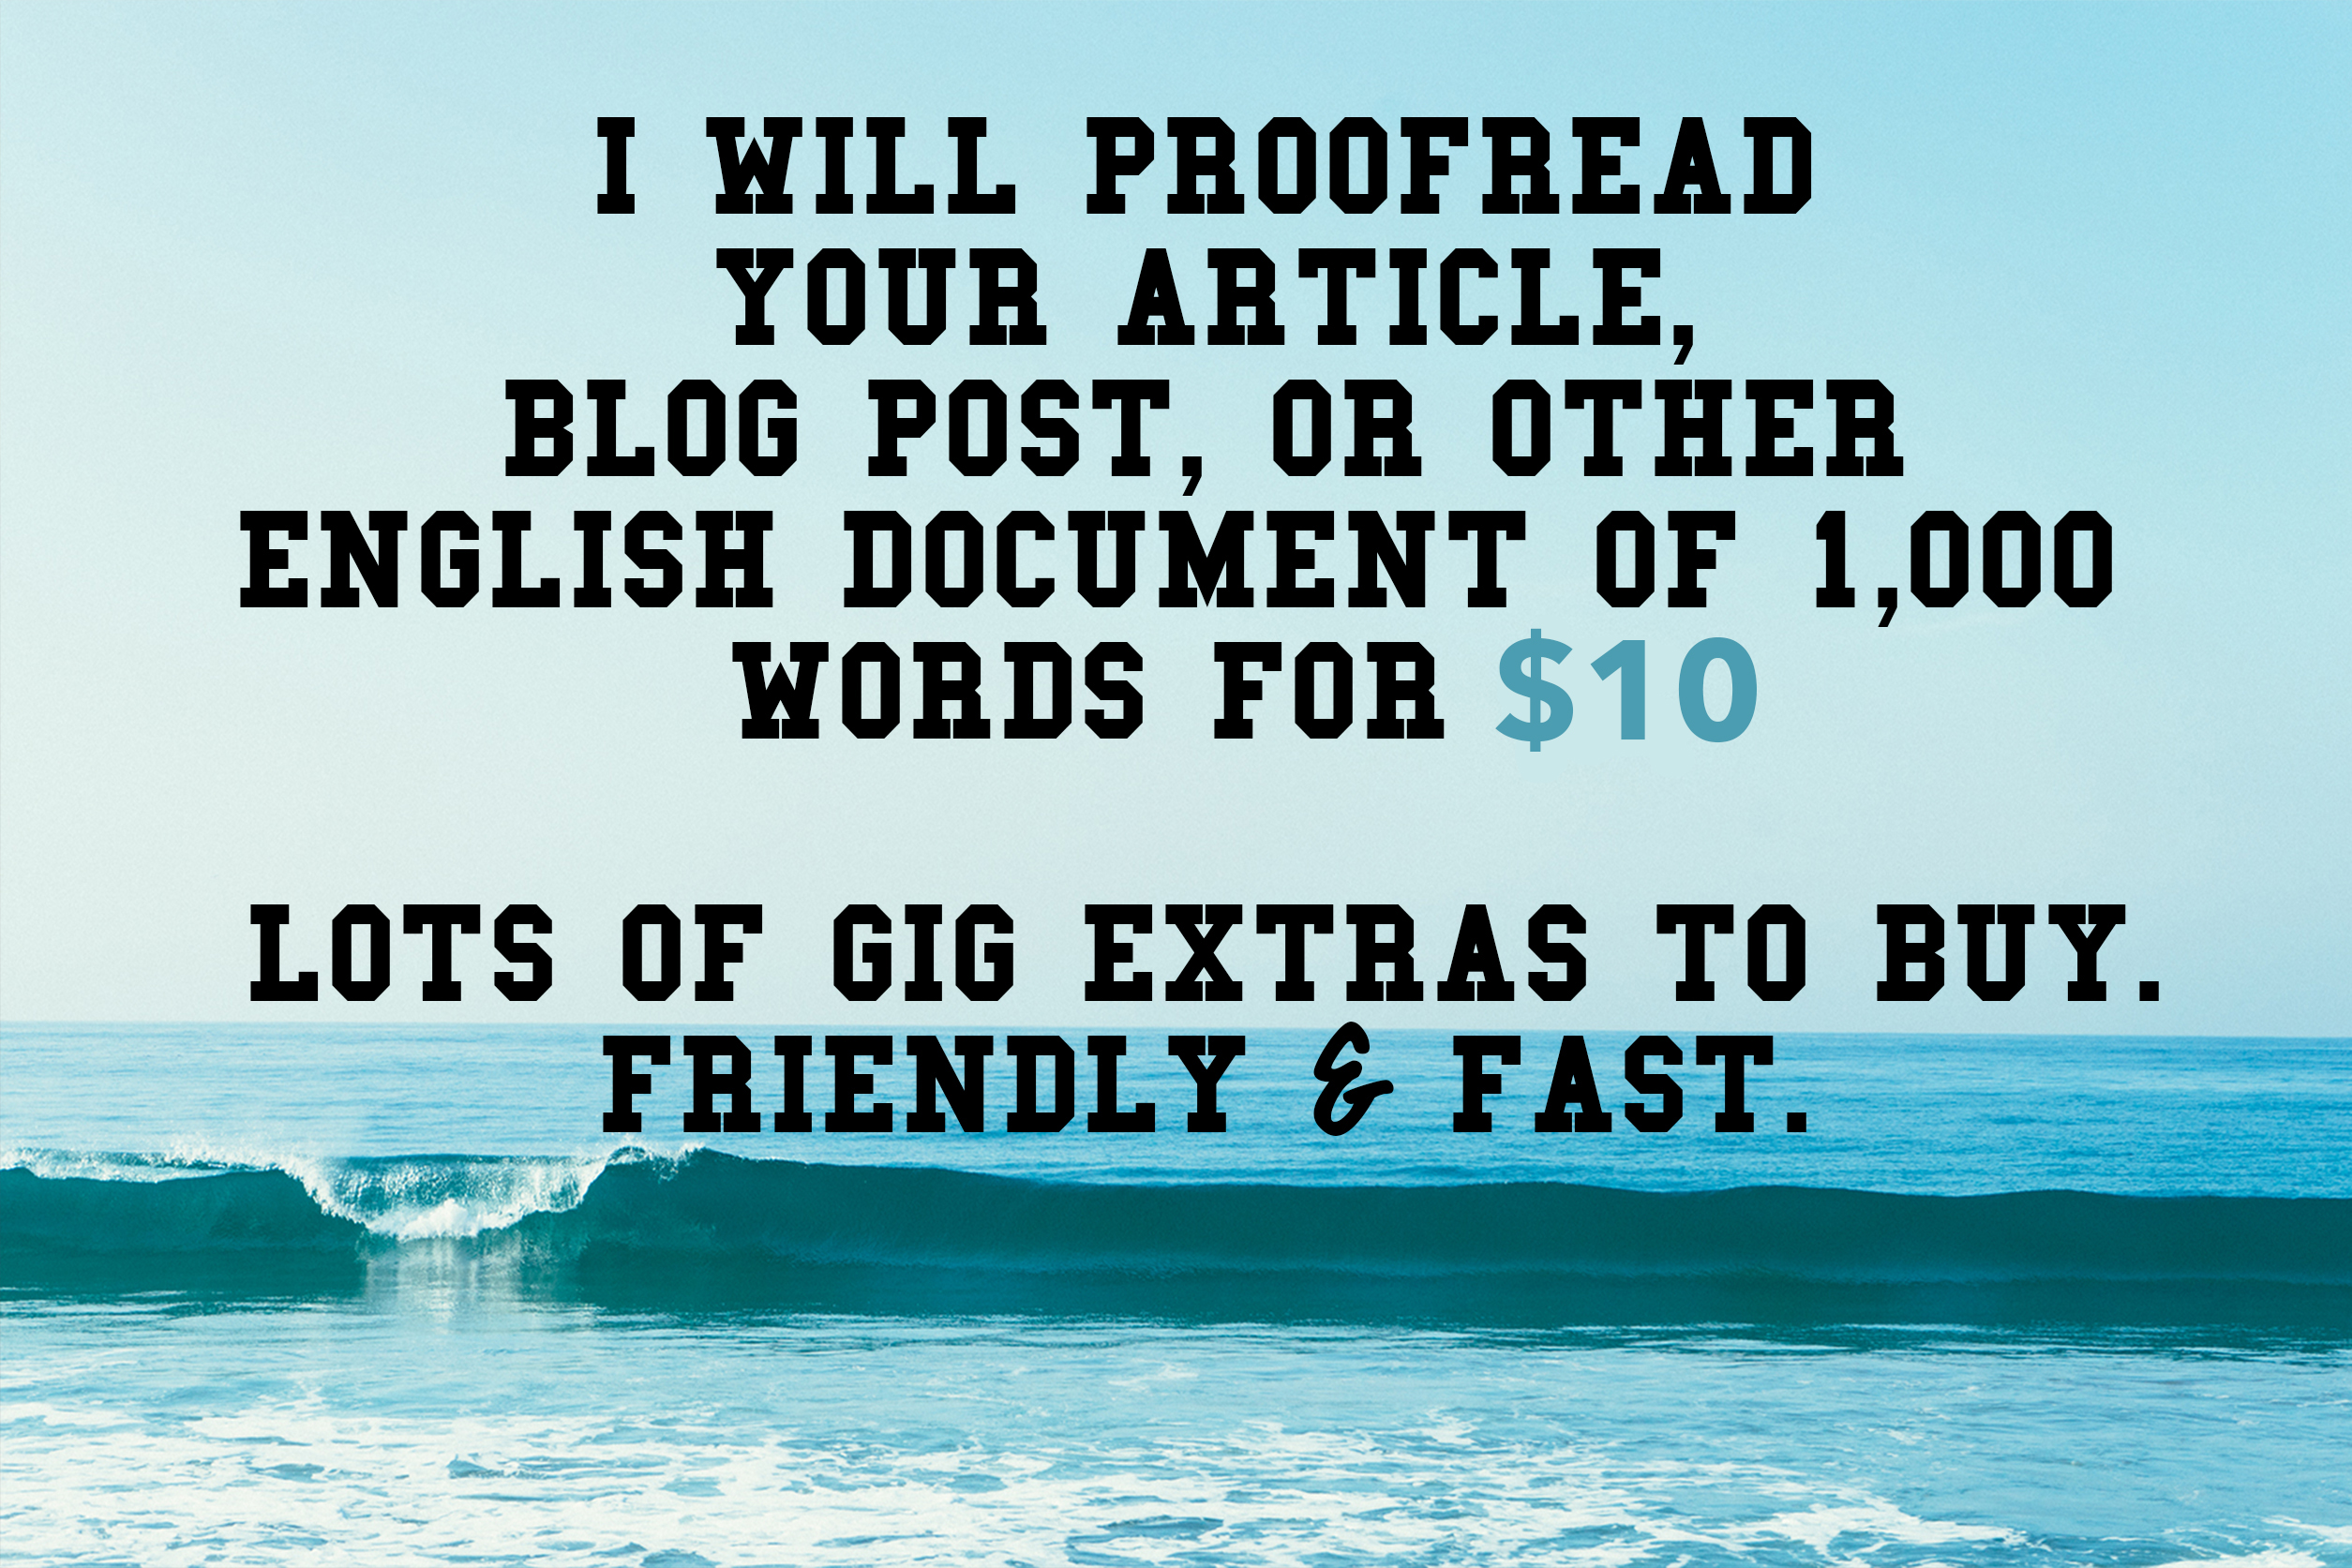 proofread your document, article or blog post of 1000 words